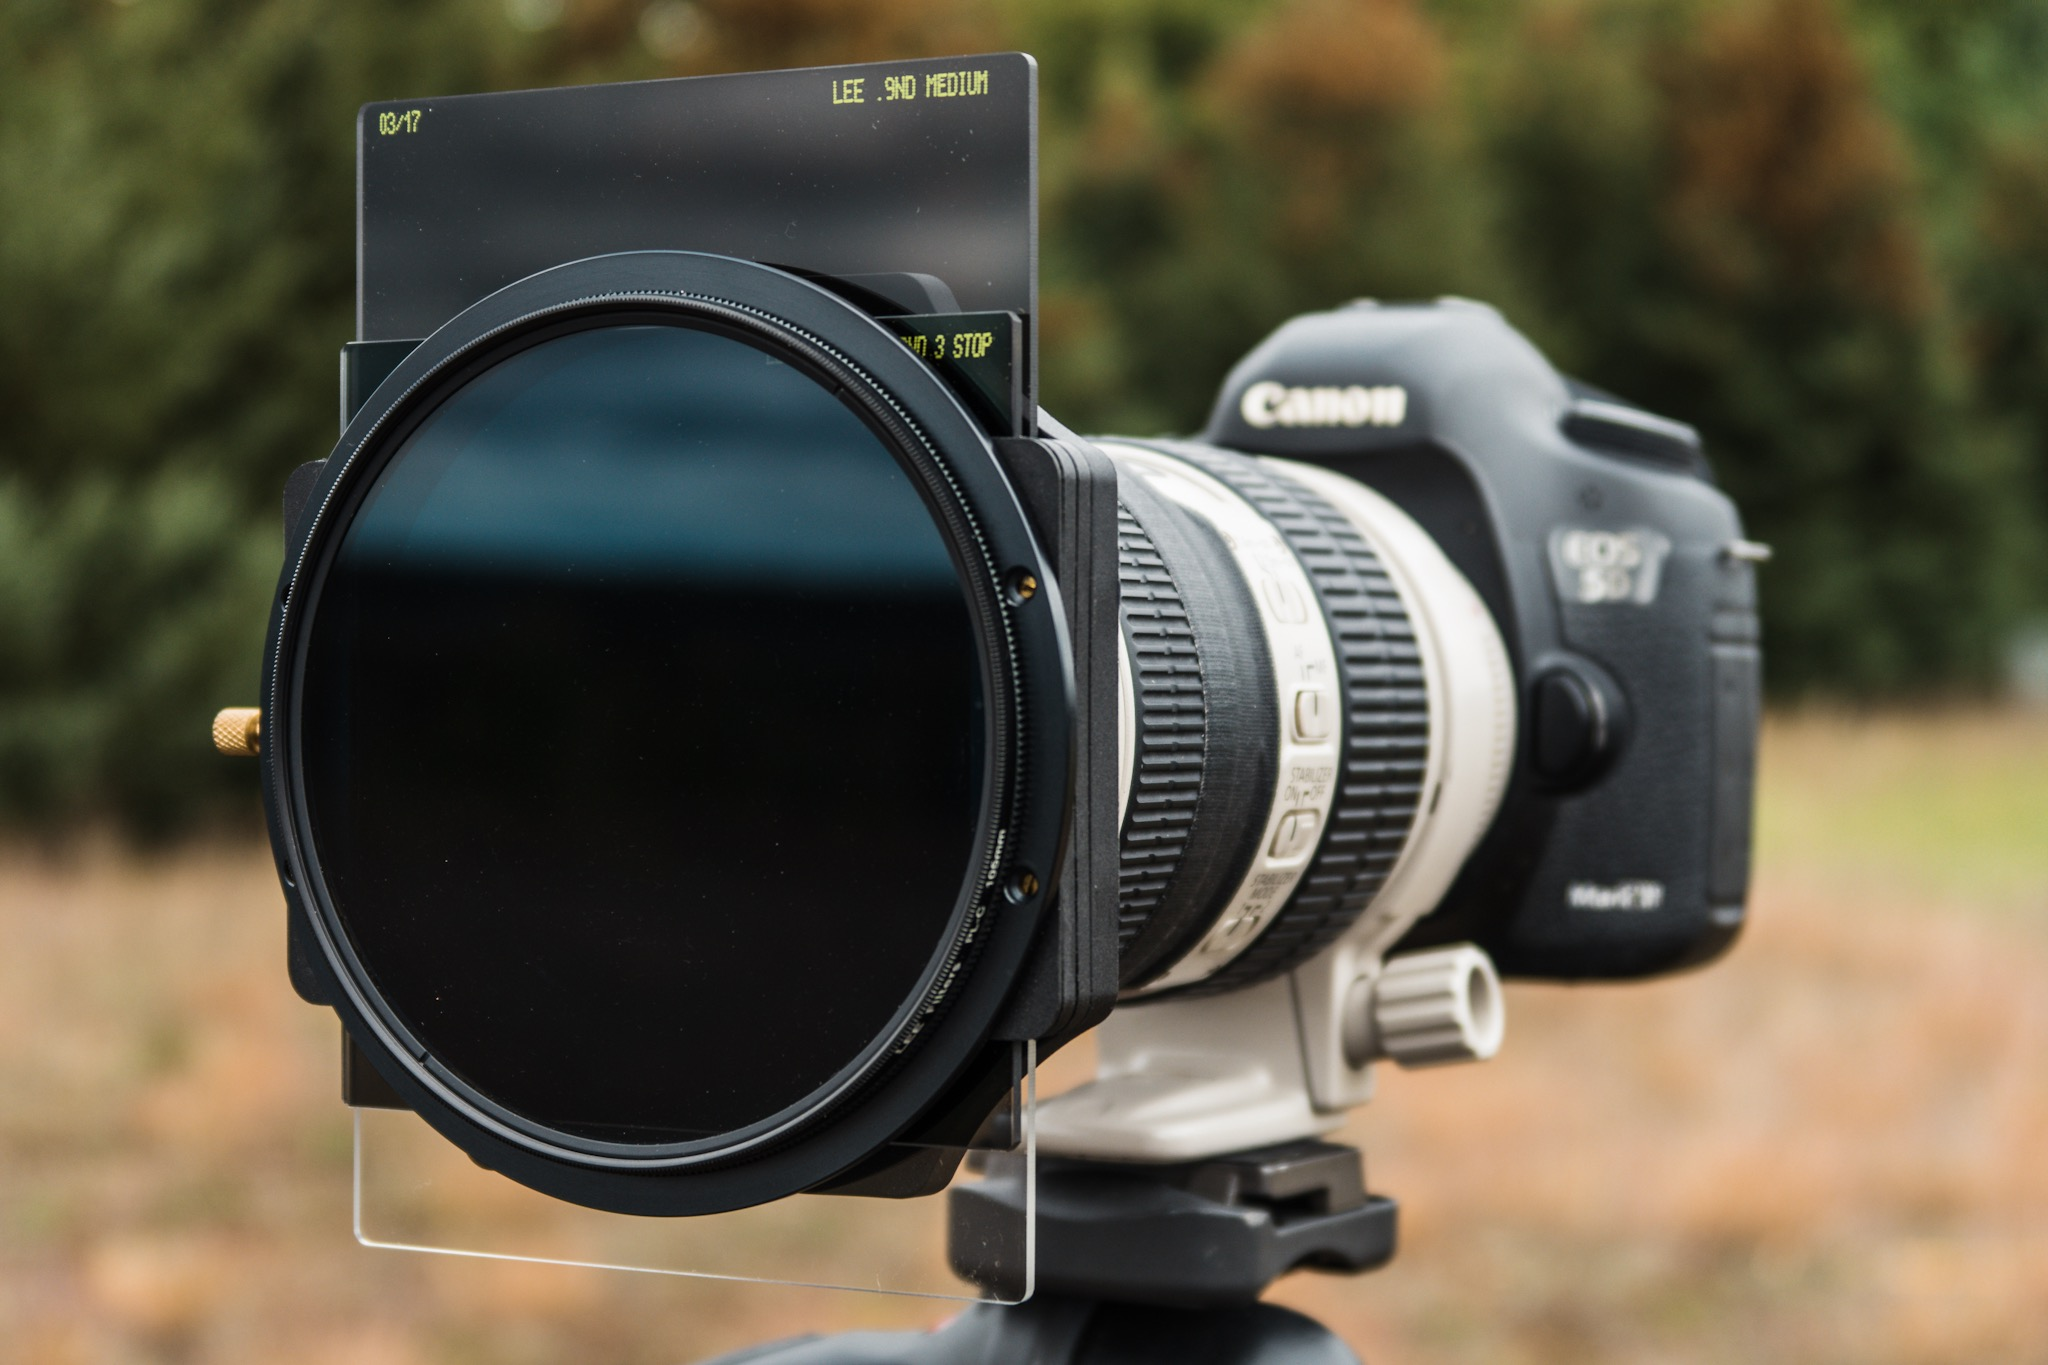 5 Types Of Photo Filters You Can Use To Improve Your